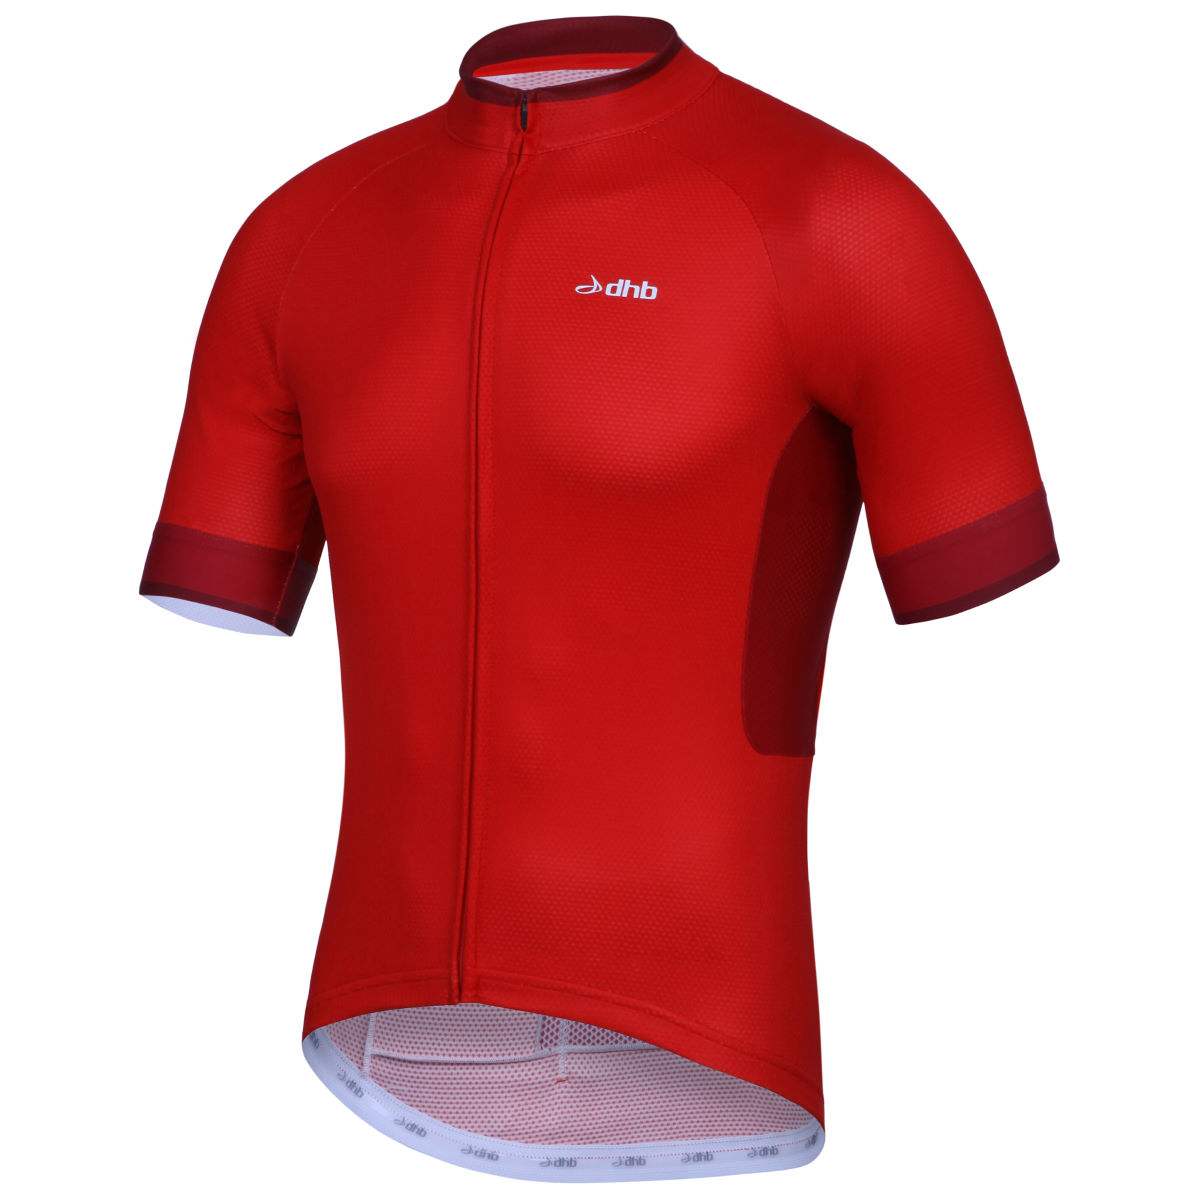 Maillot dhb Aeron (manches courtes) - XL Red/Red Maillots vélo à manches courtes